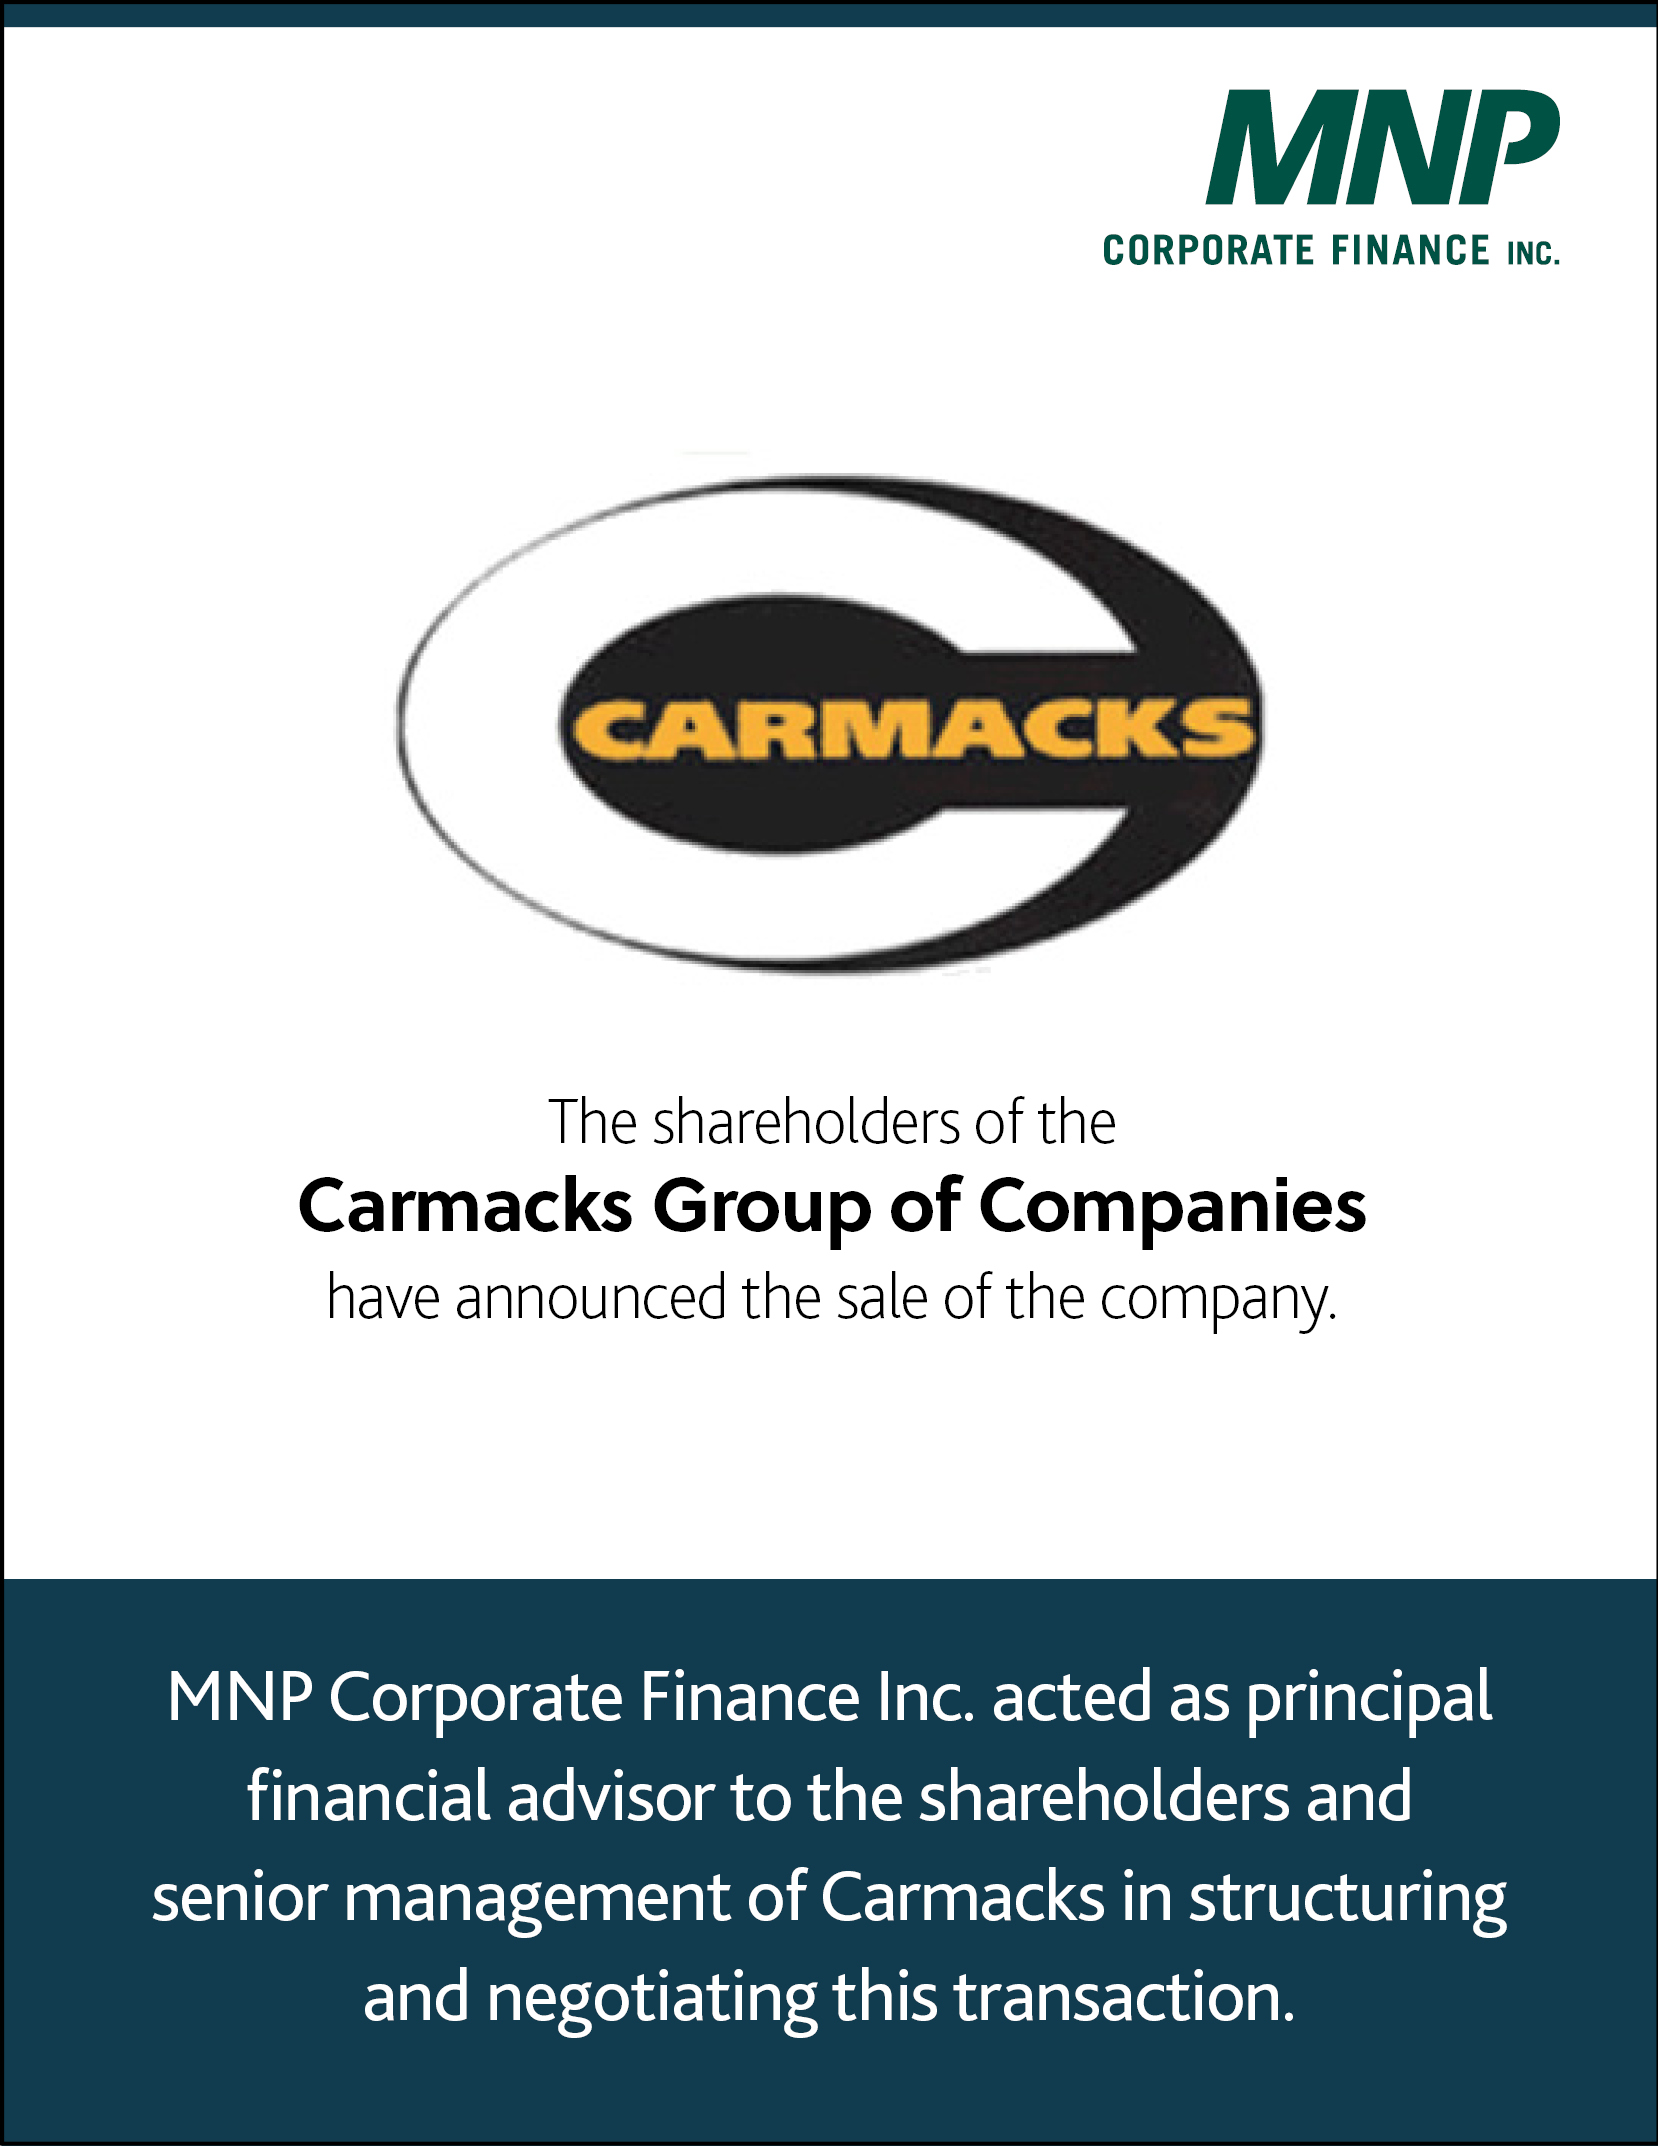 Carmacks the shareholders of the Carmacks Group of Companies have announced the sale of the company